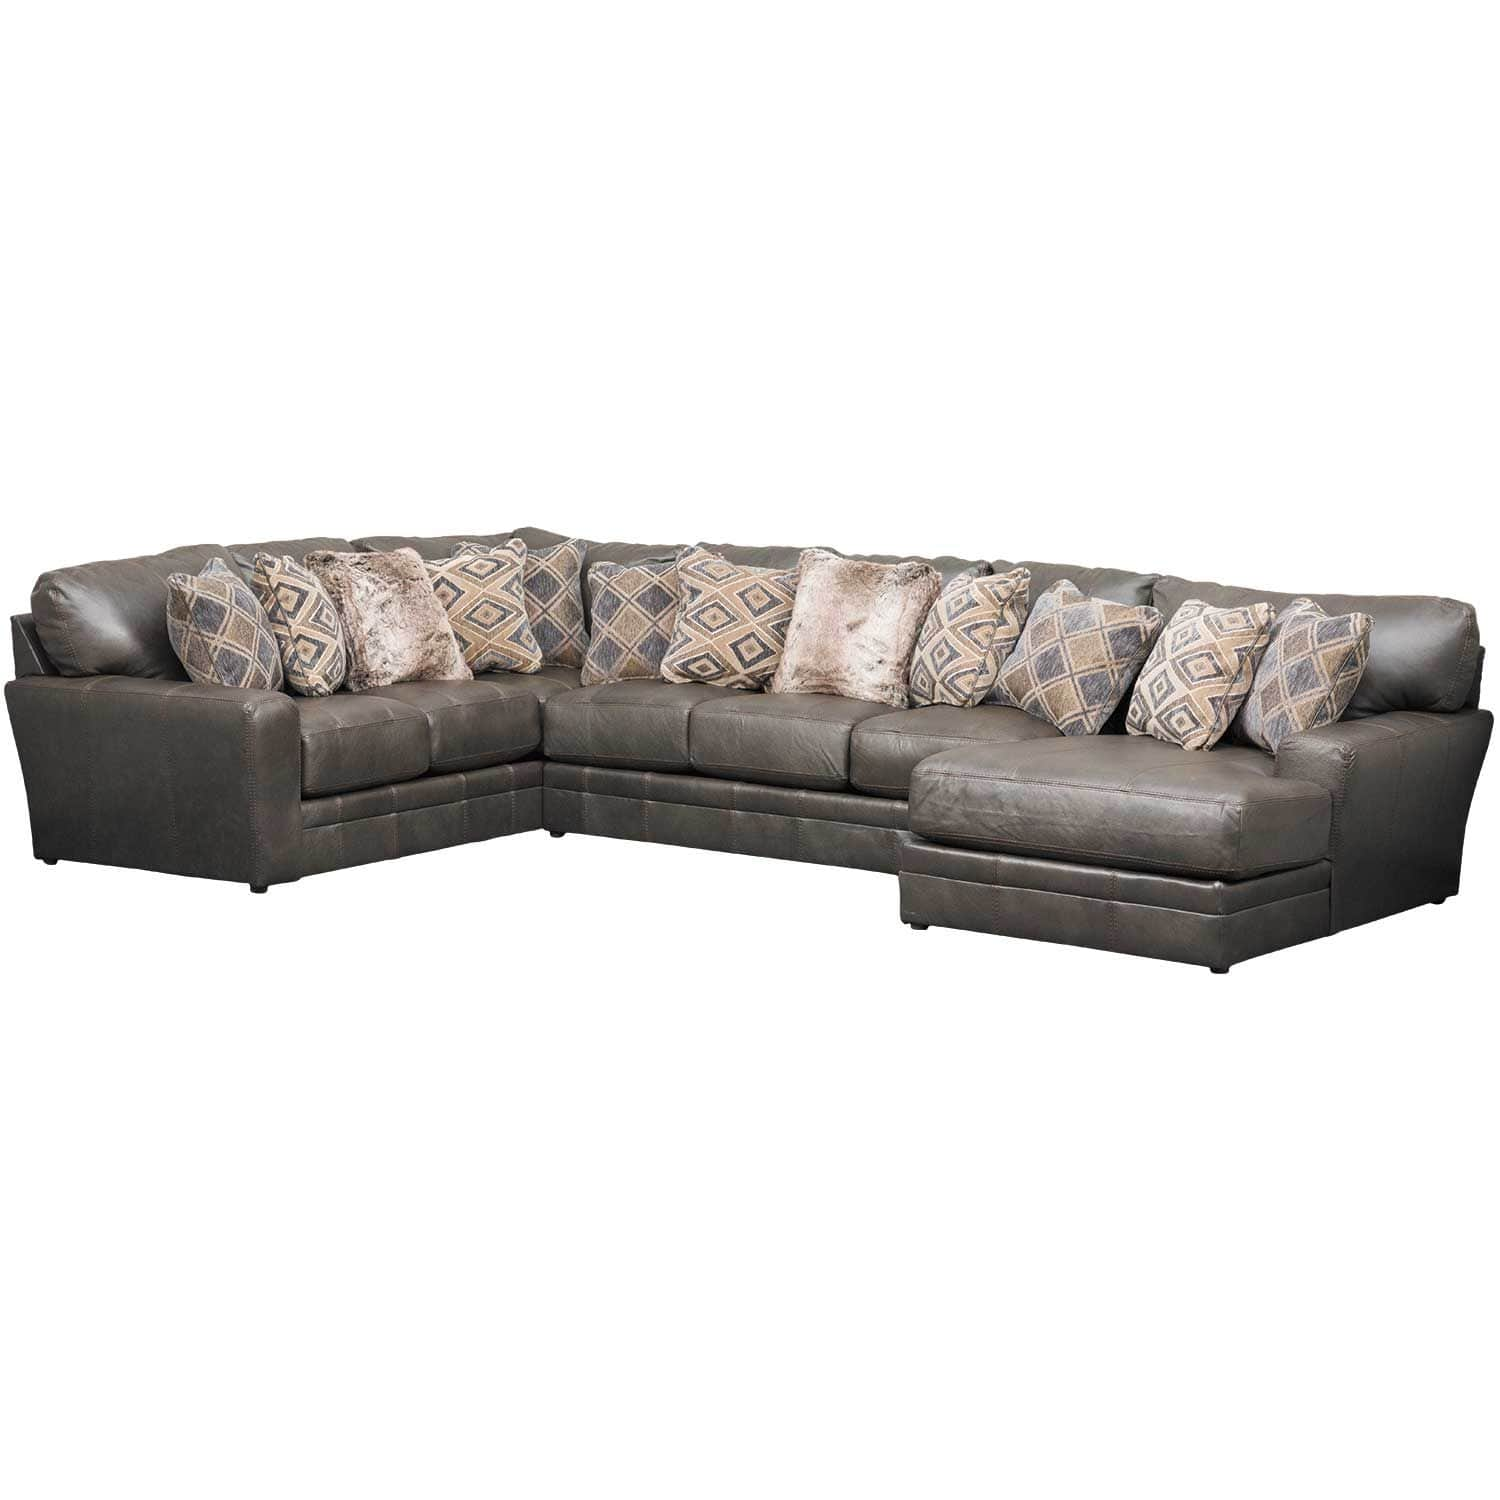 Denali 3 Piece Italian Leather Sectional with RAF Chaise